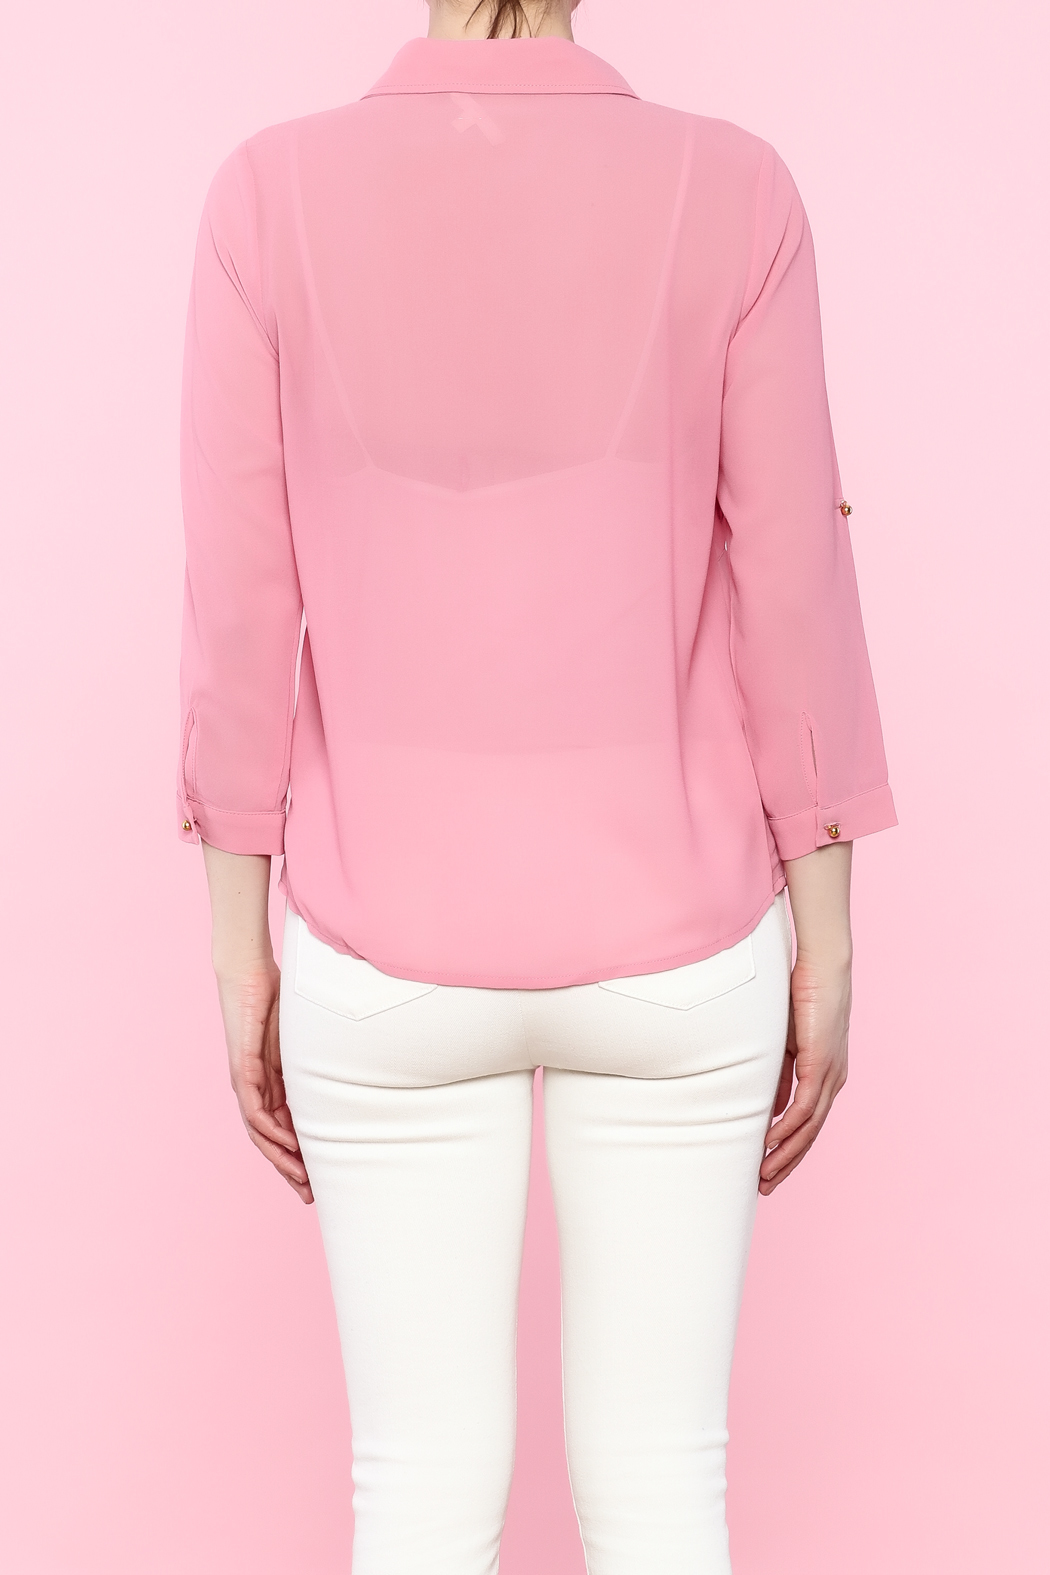 Tea N Rose Pink Flower Blouse From Indiana By Athenas Fashion